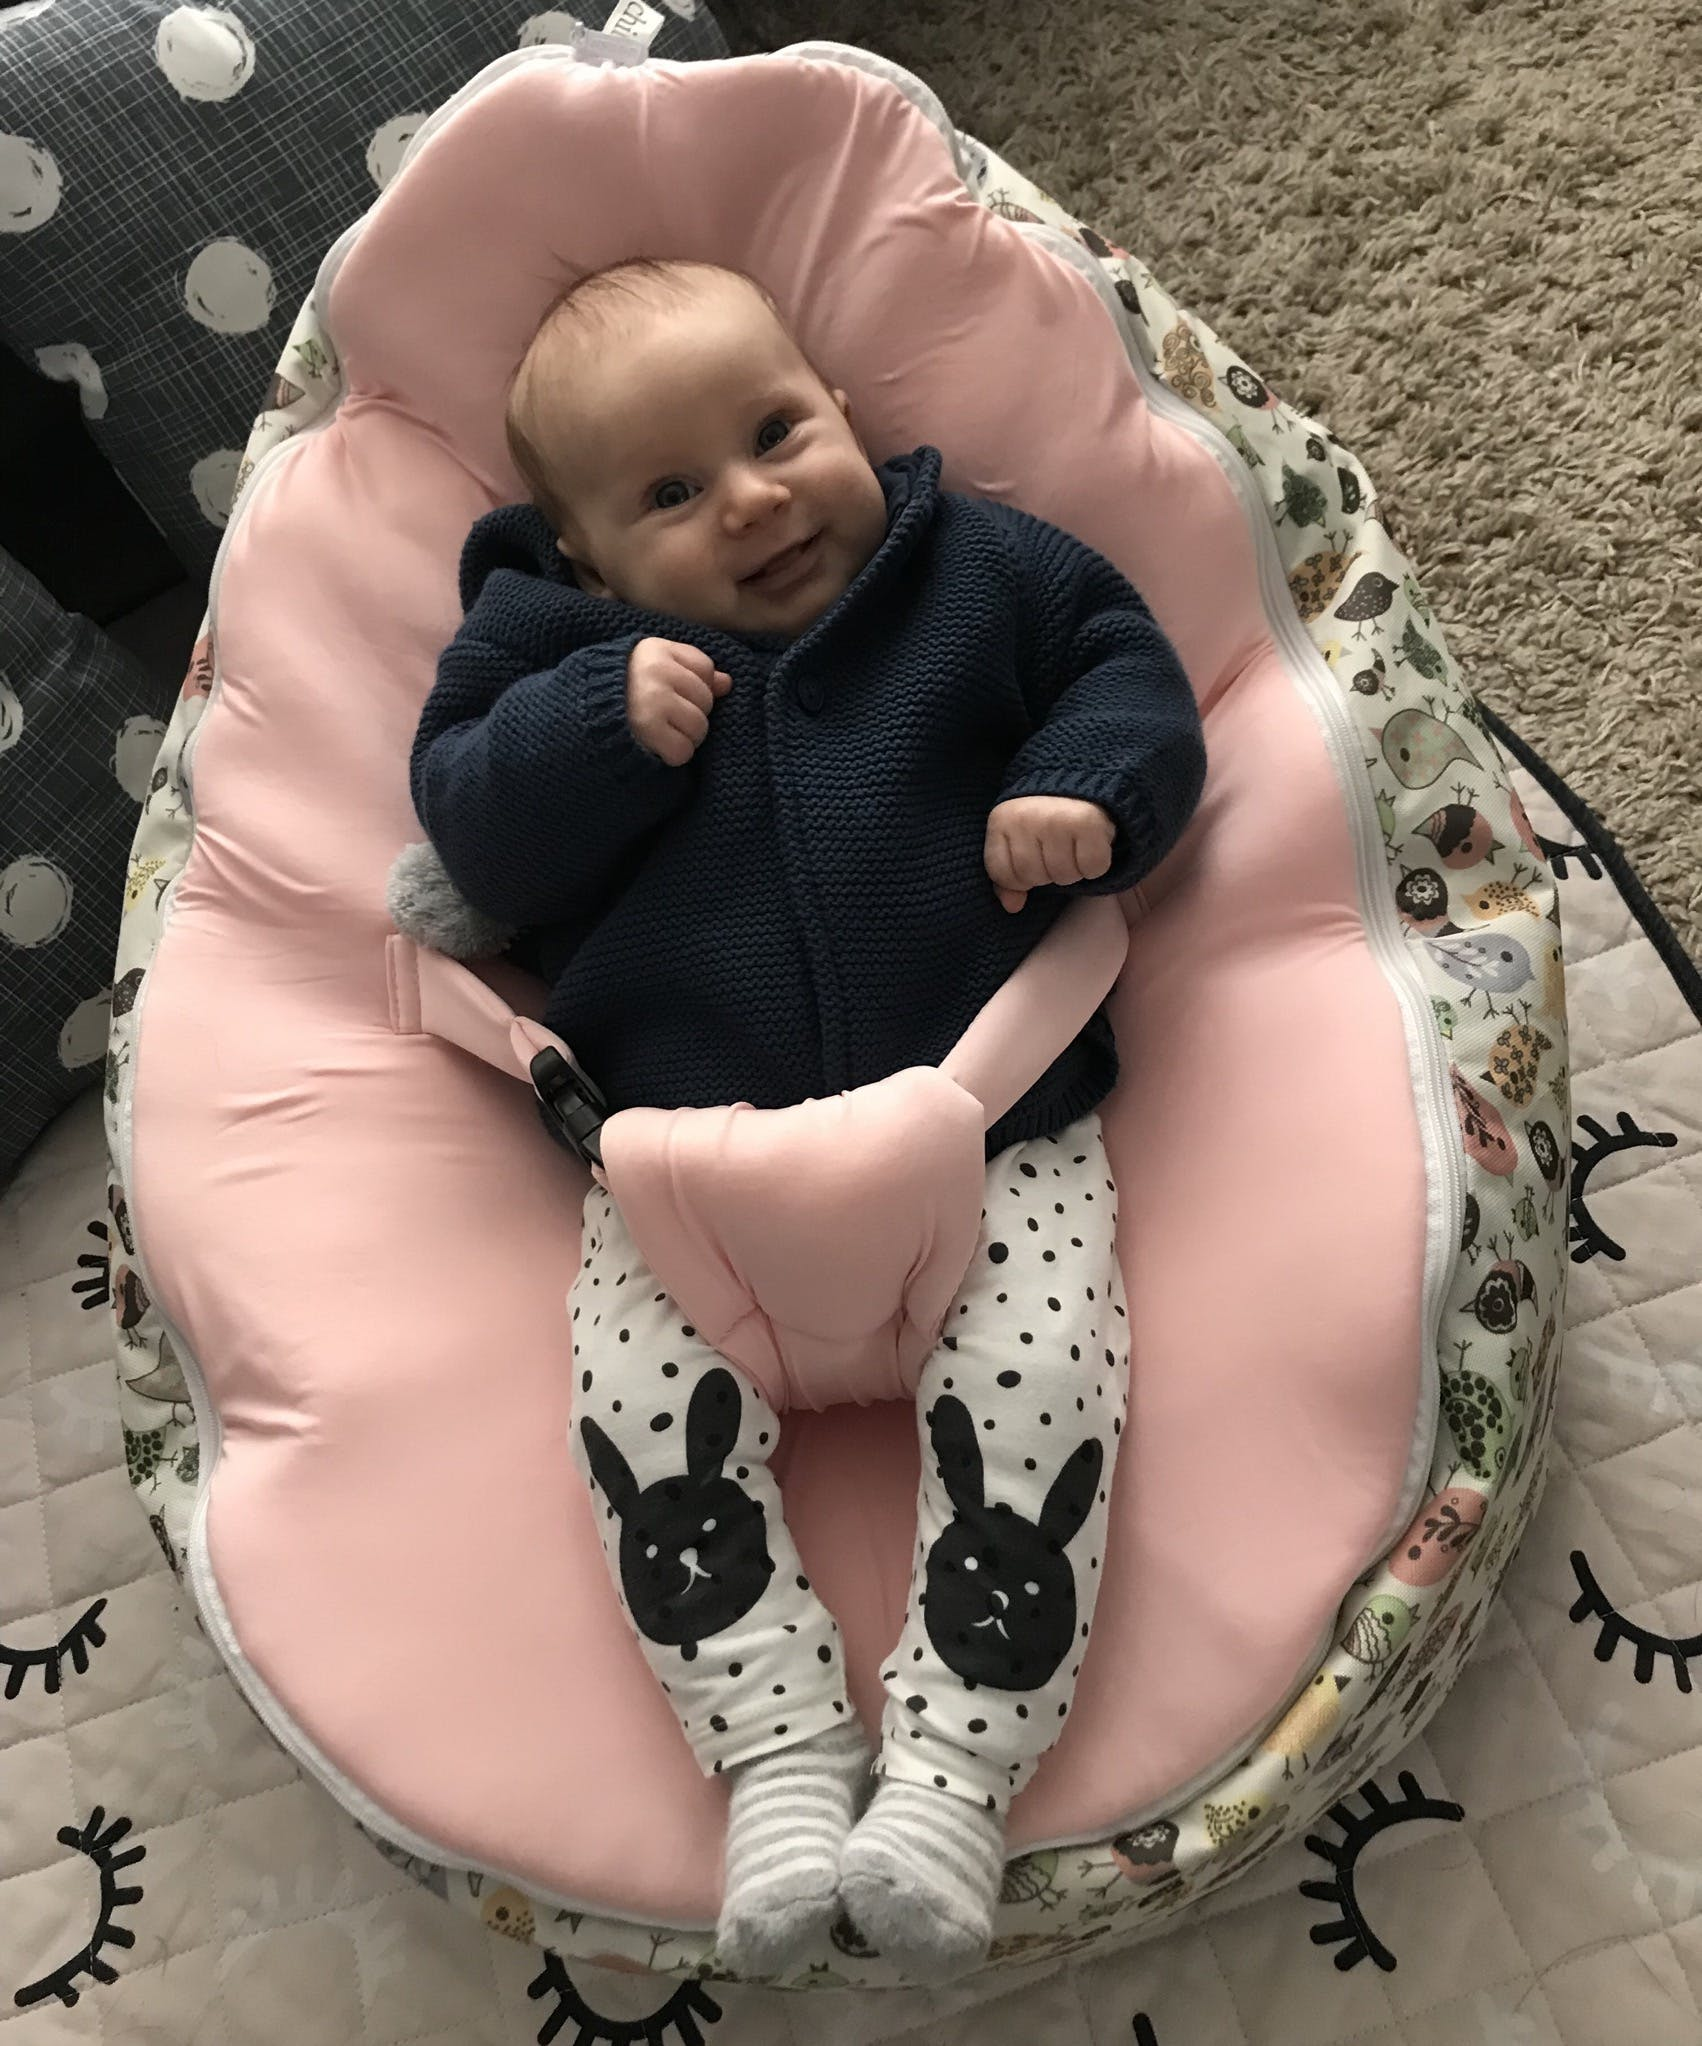 Pink Baby Seat for 'Smiley Face' Snuggle Pods (black buckle)